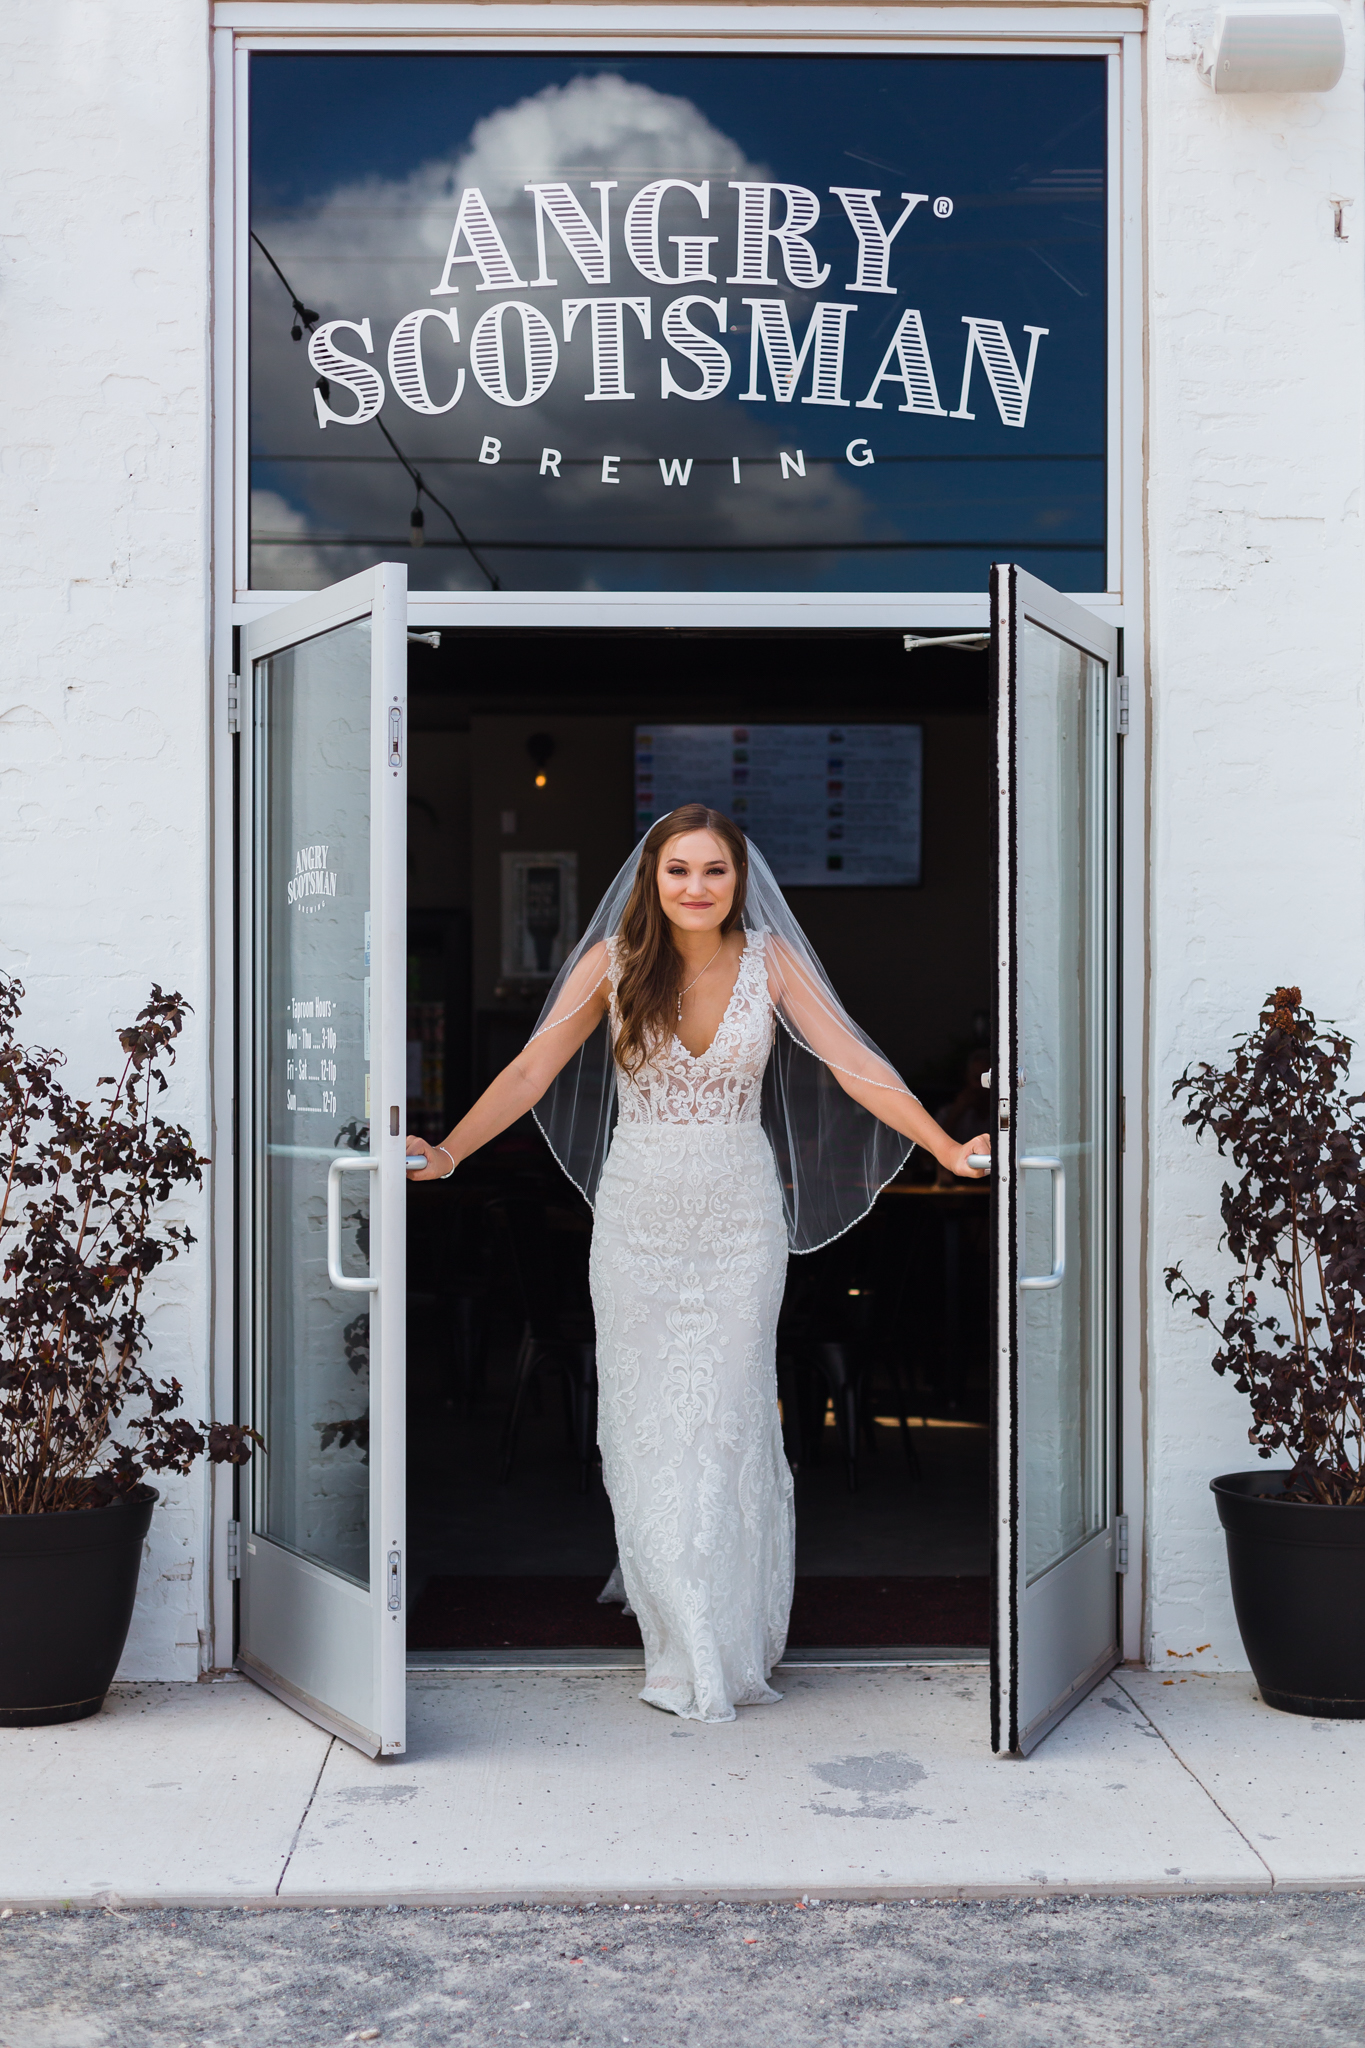 Angry Scotsman Brewing Private Party Spaces, Venues